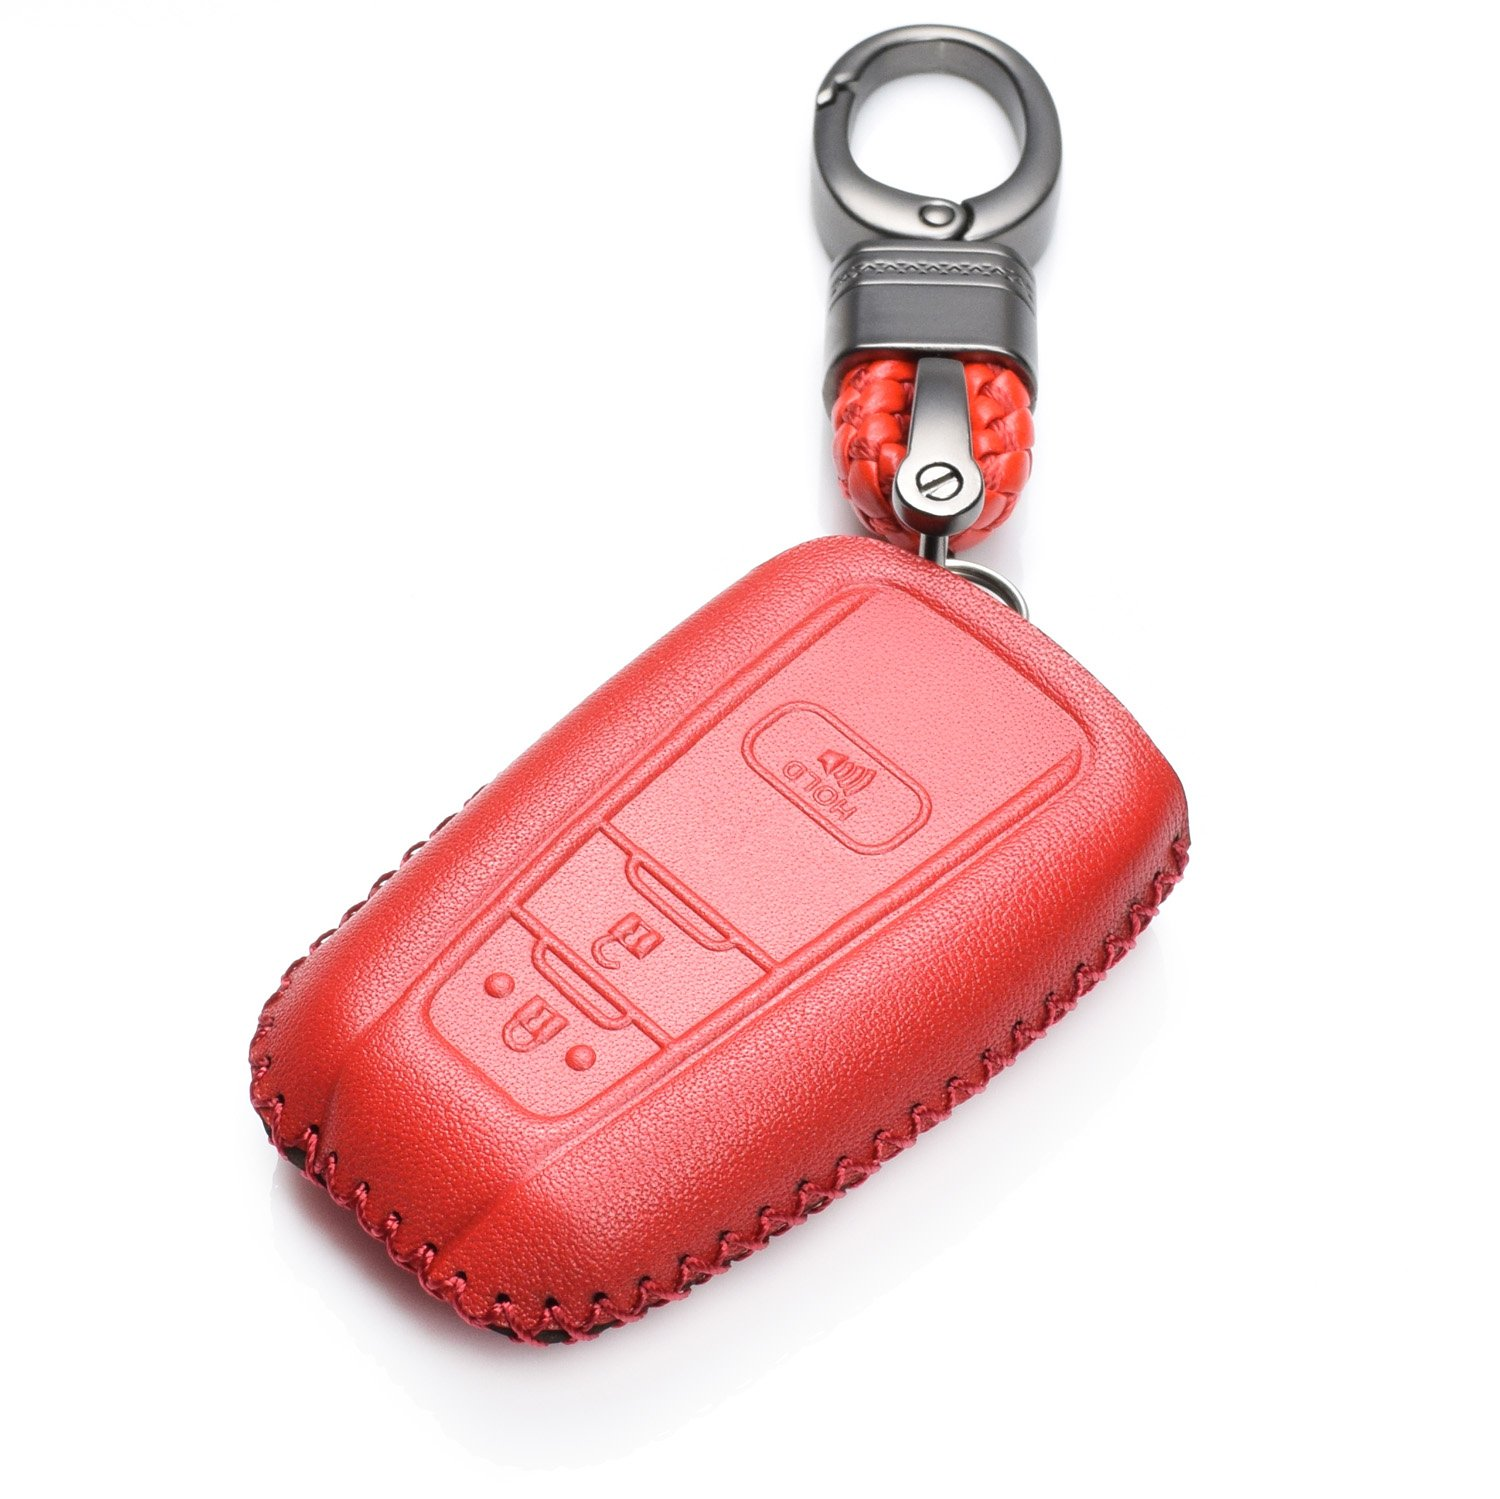 Vitodeco Genuine Leather Smart Key Keyless Remote Entry Fob Case Cover with Key Chain for Toyota C-HR, Camry, Prius (3 Buttons, Red)